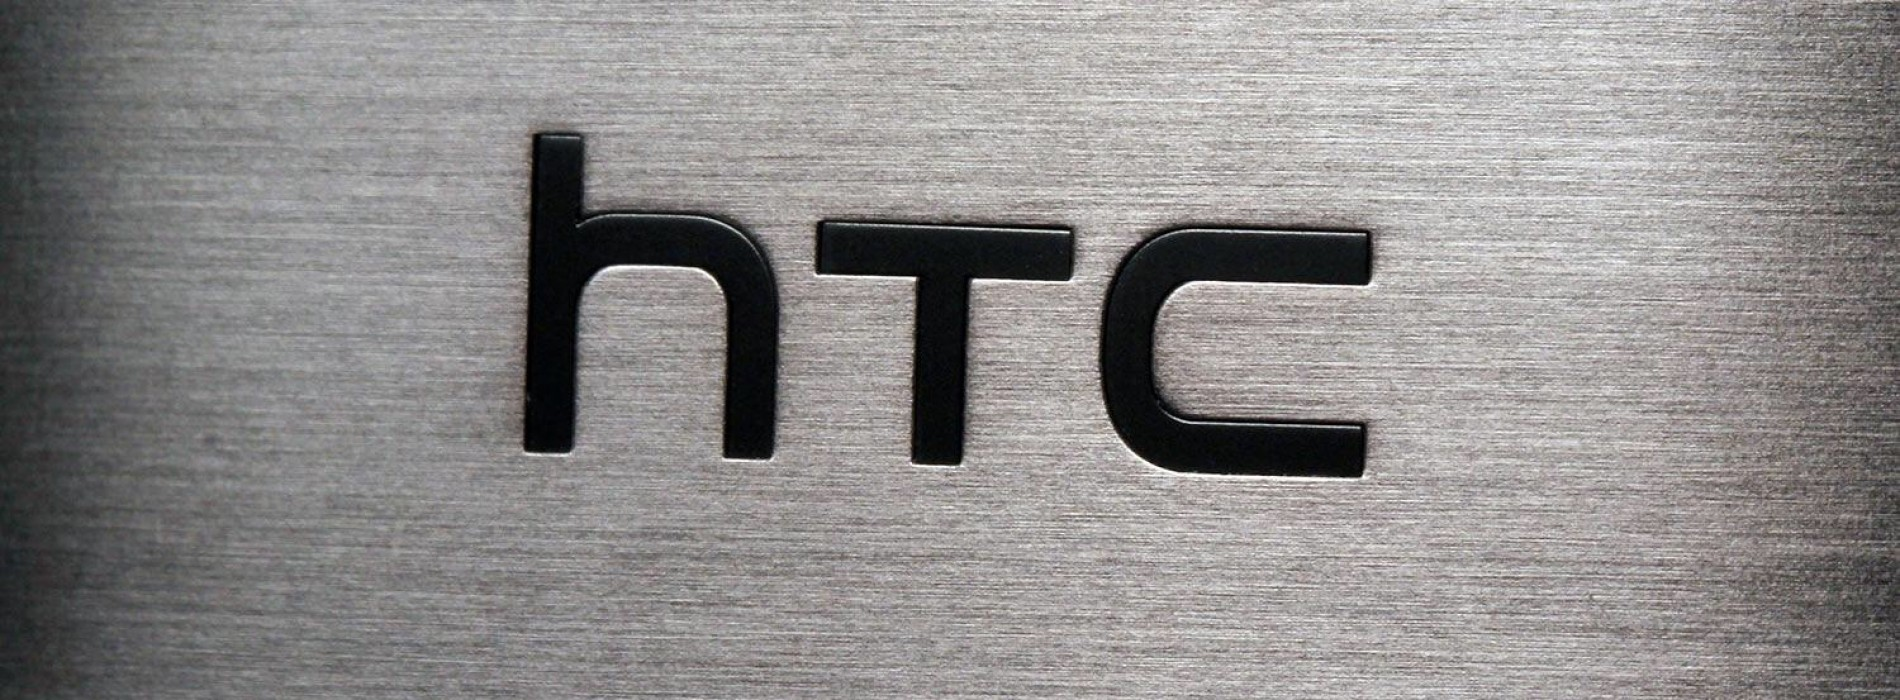 HTC working on an octa-core 64-bit smartphone